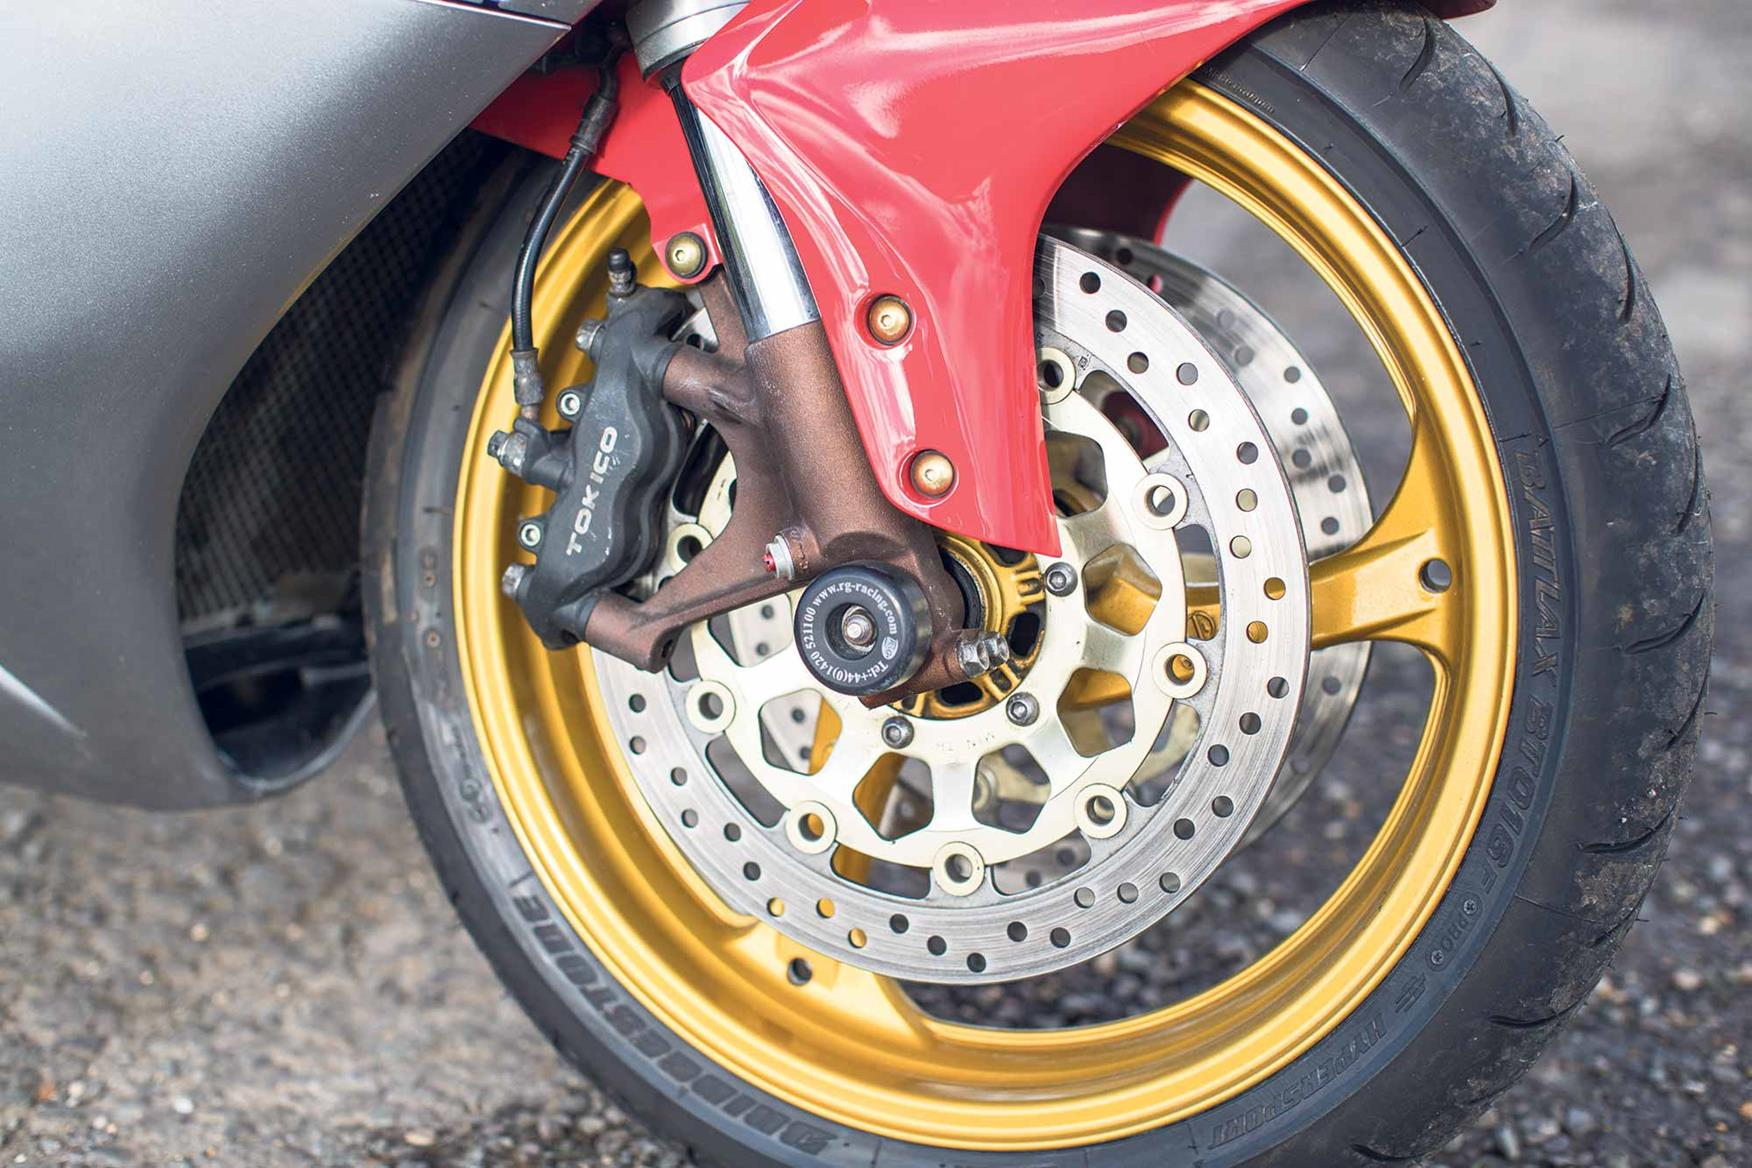 The front forks on the 2004 Fireblade